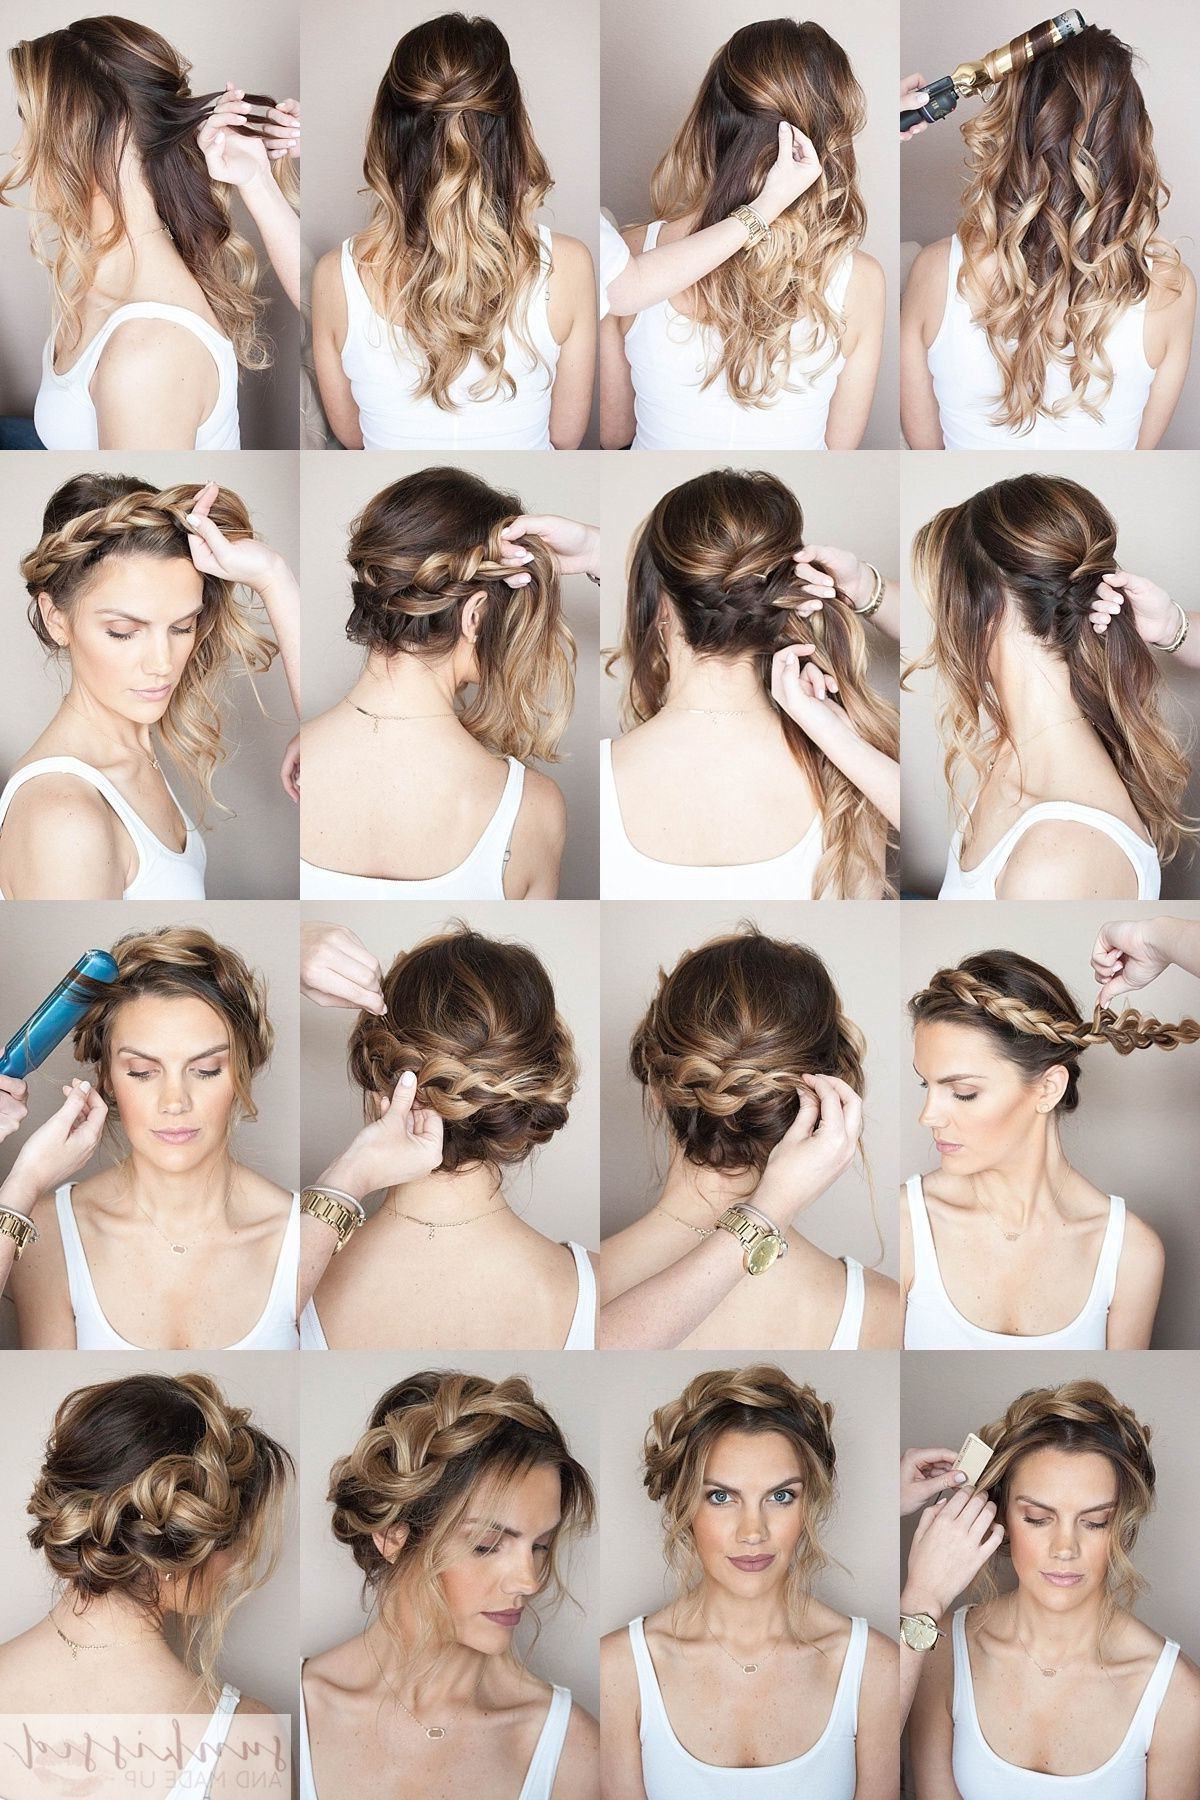 Crown Braid Tutorial // Braided Crown How To // Halo Braid Throughout Current Halo Braided Hairstyles With Bangs (View 5 of 20)